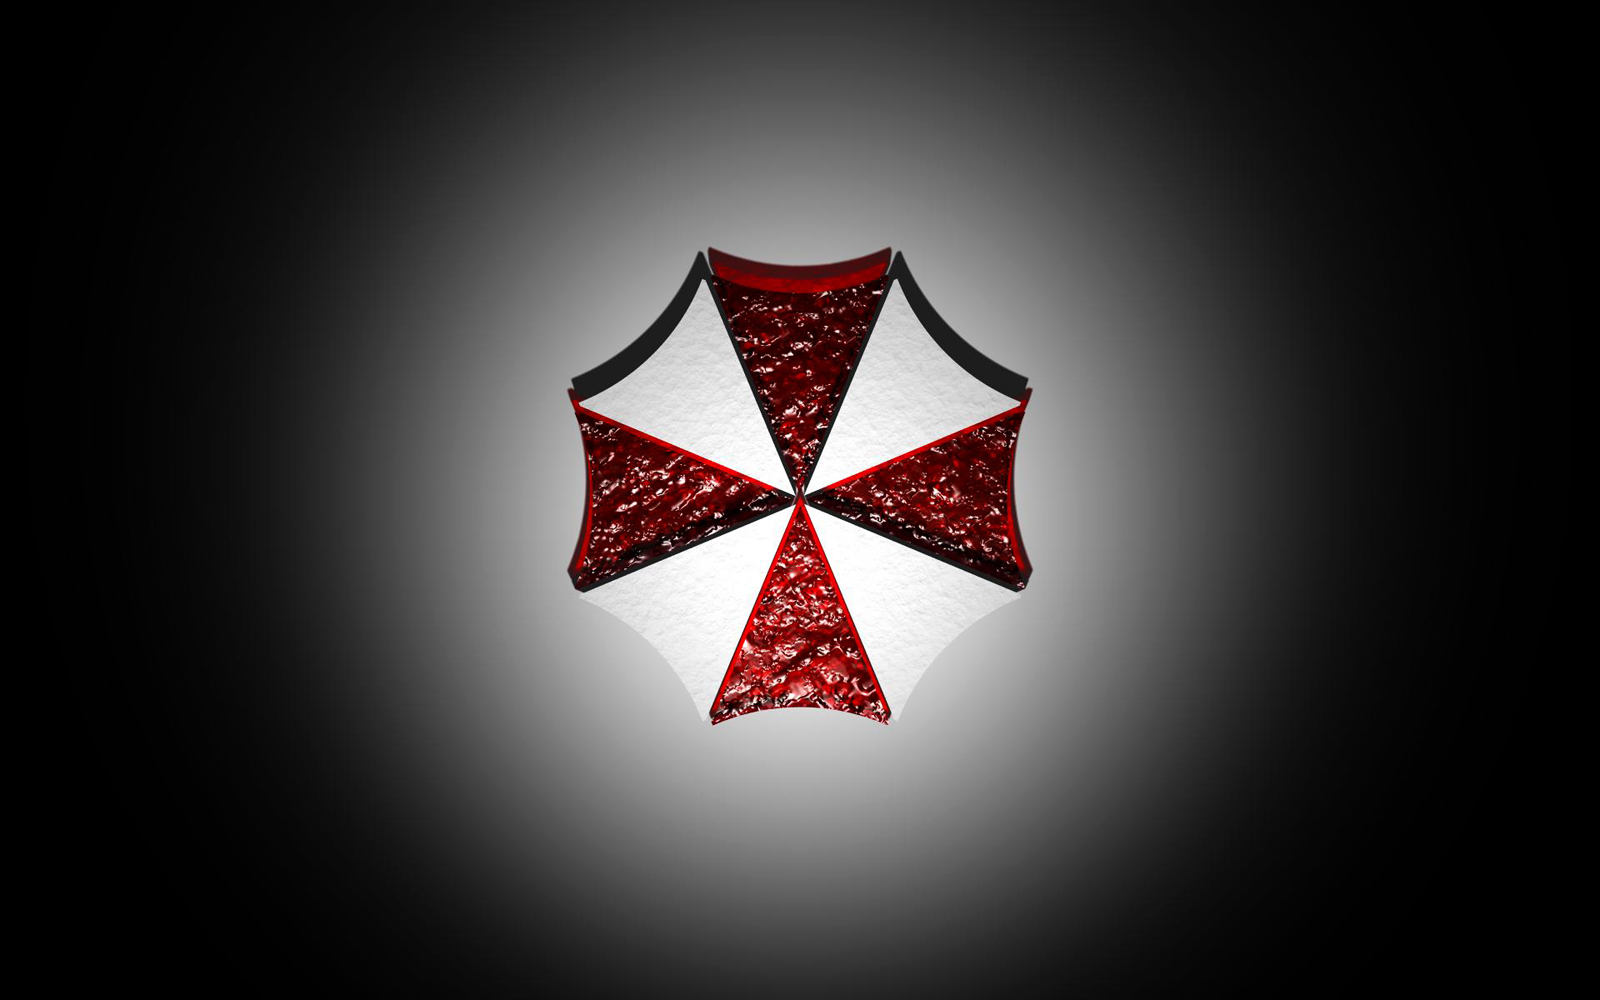 Central wallpaper umbrella corporation logo hd wallpapers umbrella corp logo hd wallpaper voltagebd Images